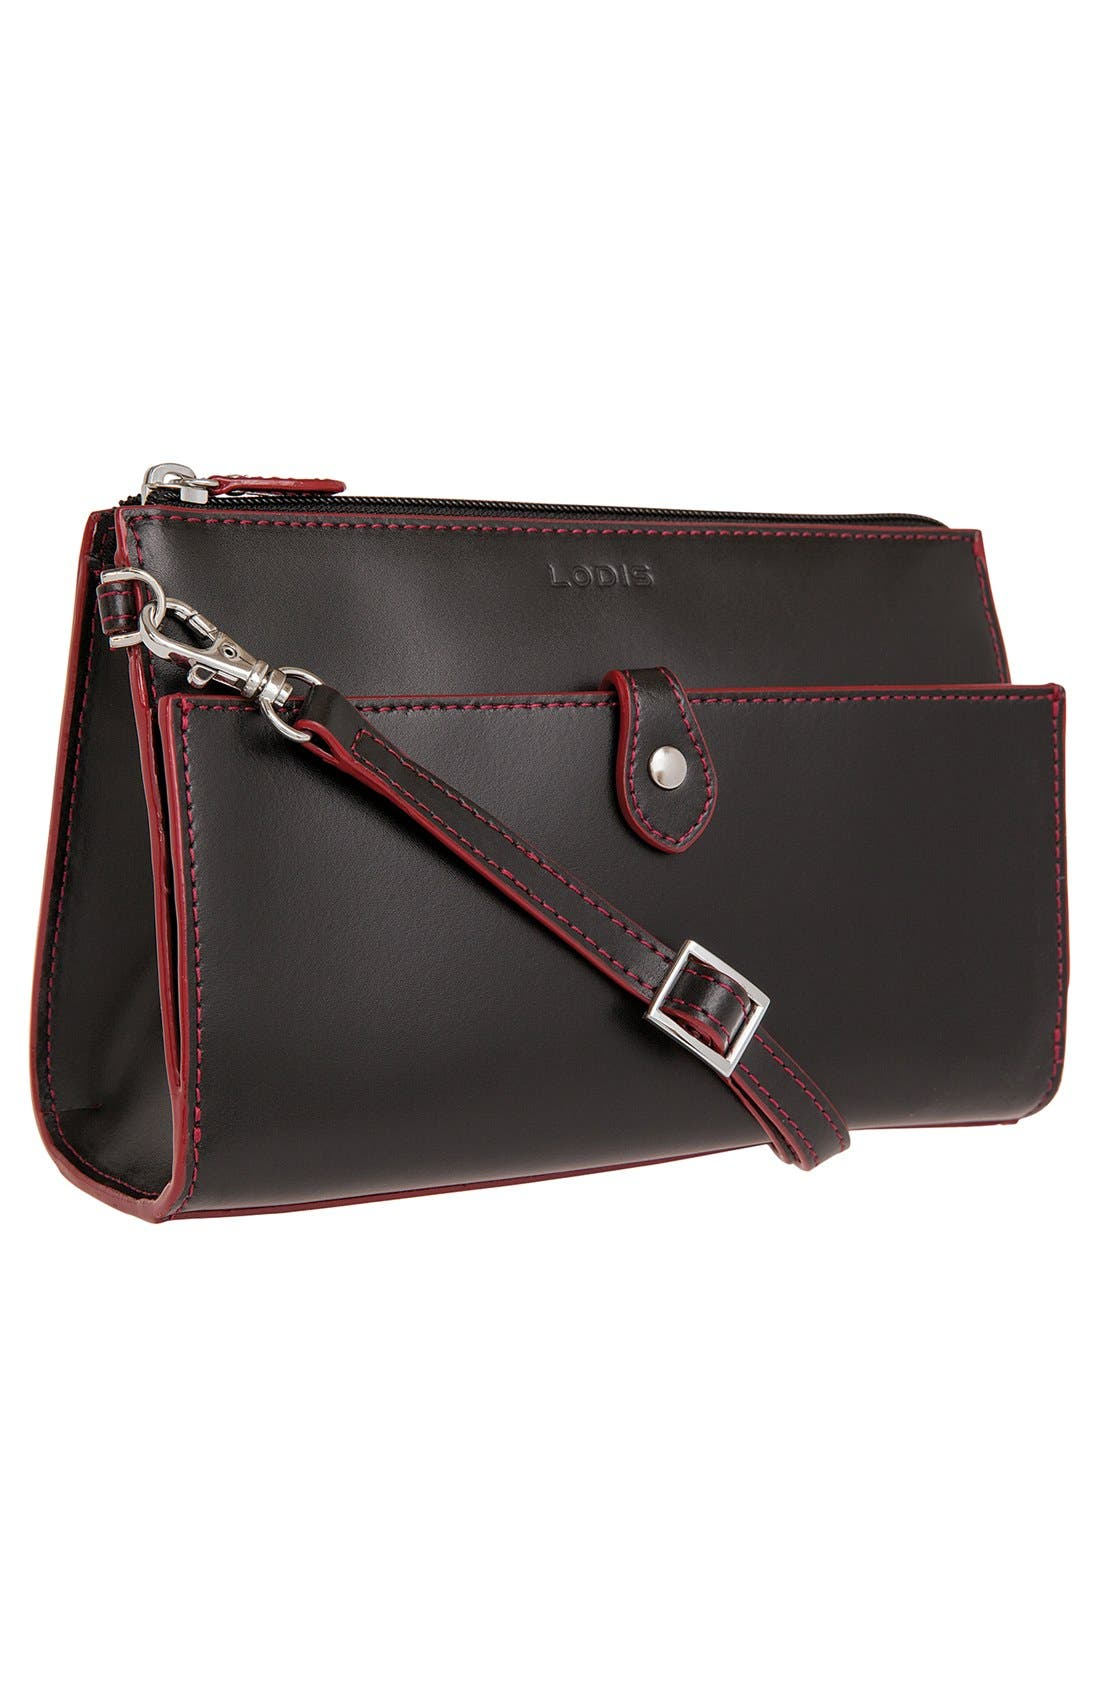 Lodis 'Audrey Collection - Vicky' Convertible Crossbody Bag,                             Alternate thumbnail 2, color,                             Black